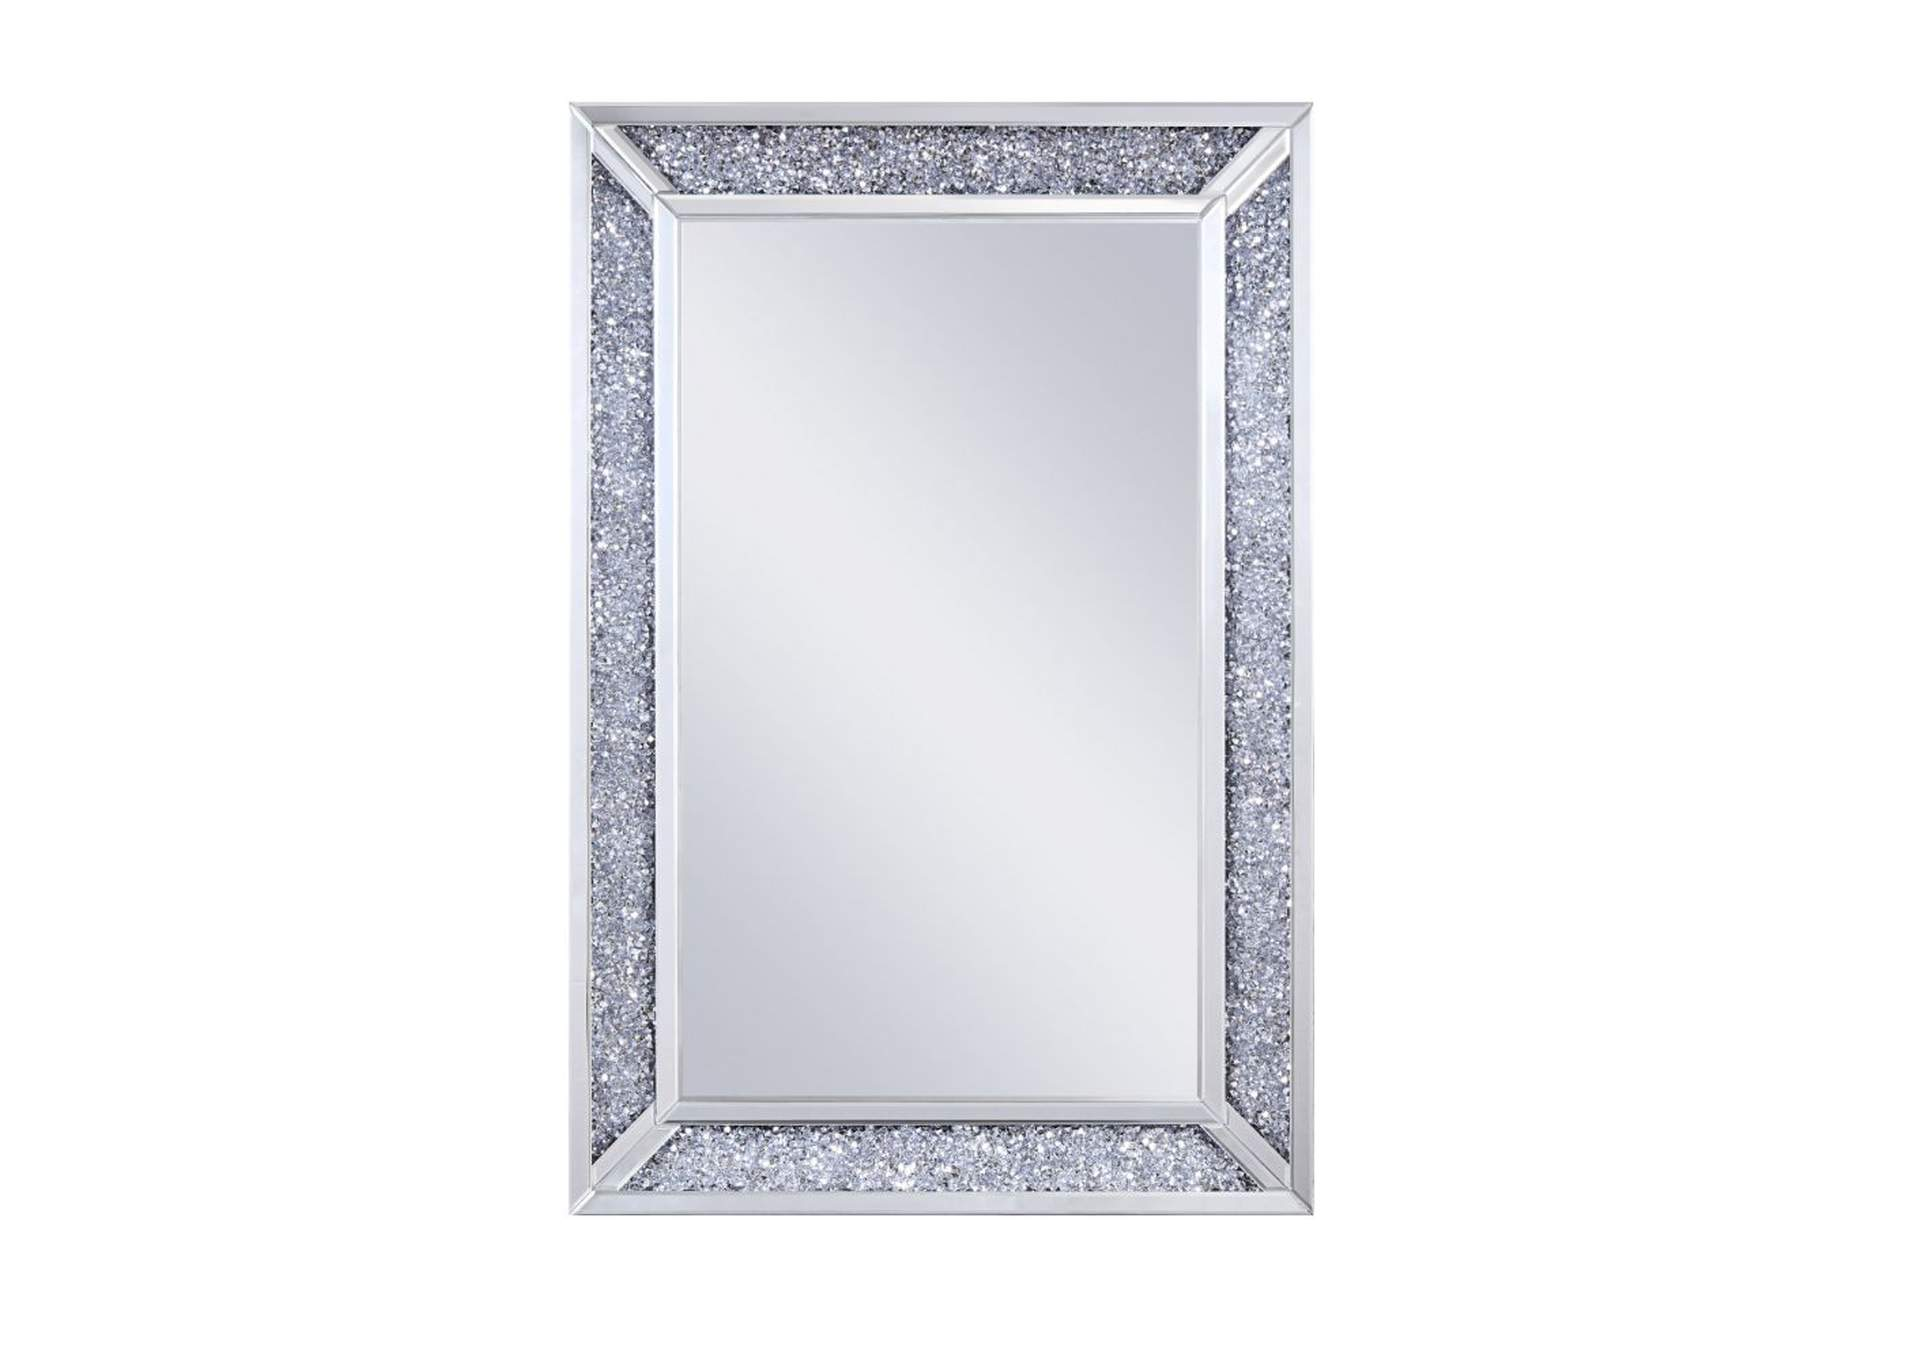 Noralie Wall Mirror,Acme